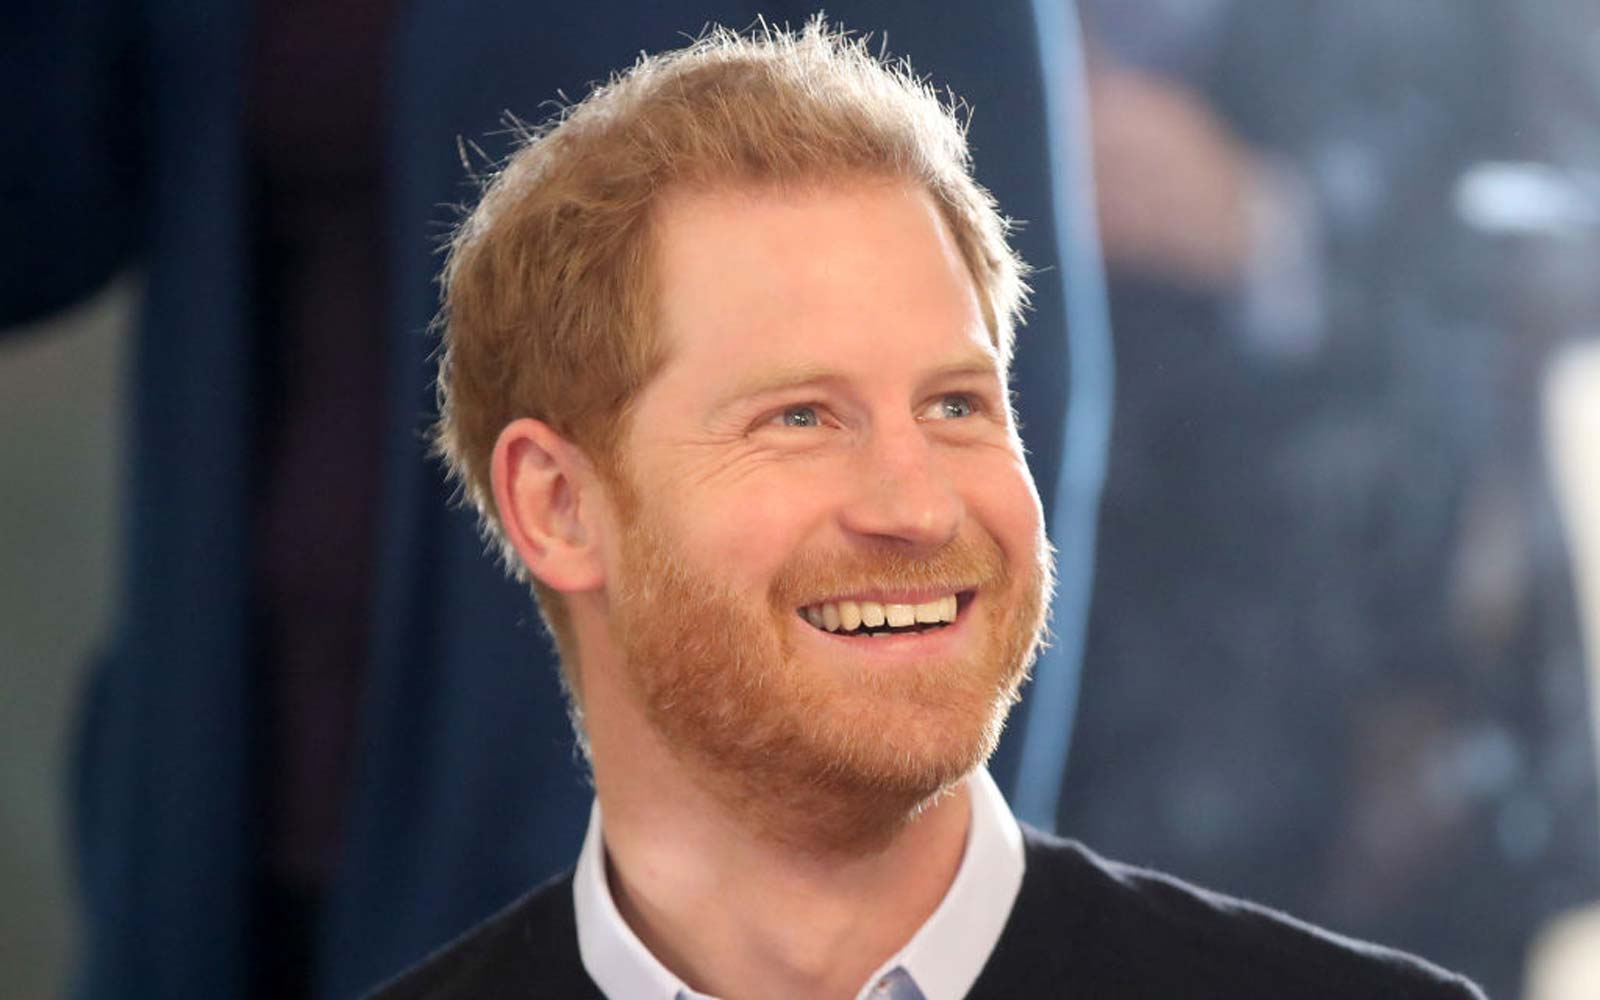 Prince Harry Took a Surprise Trip to Berlin Without Meghan Markle for a Special Reason